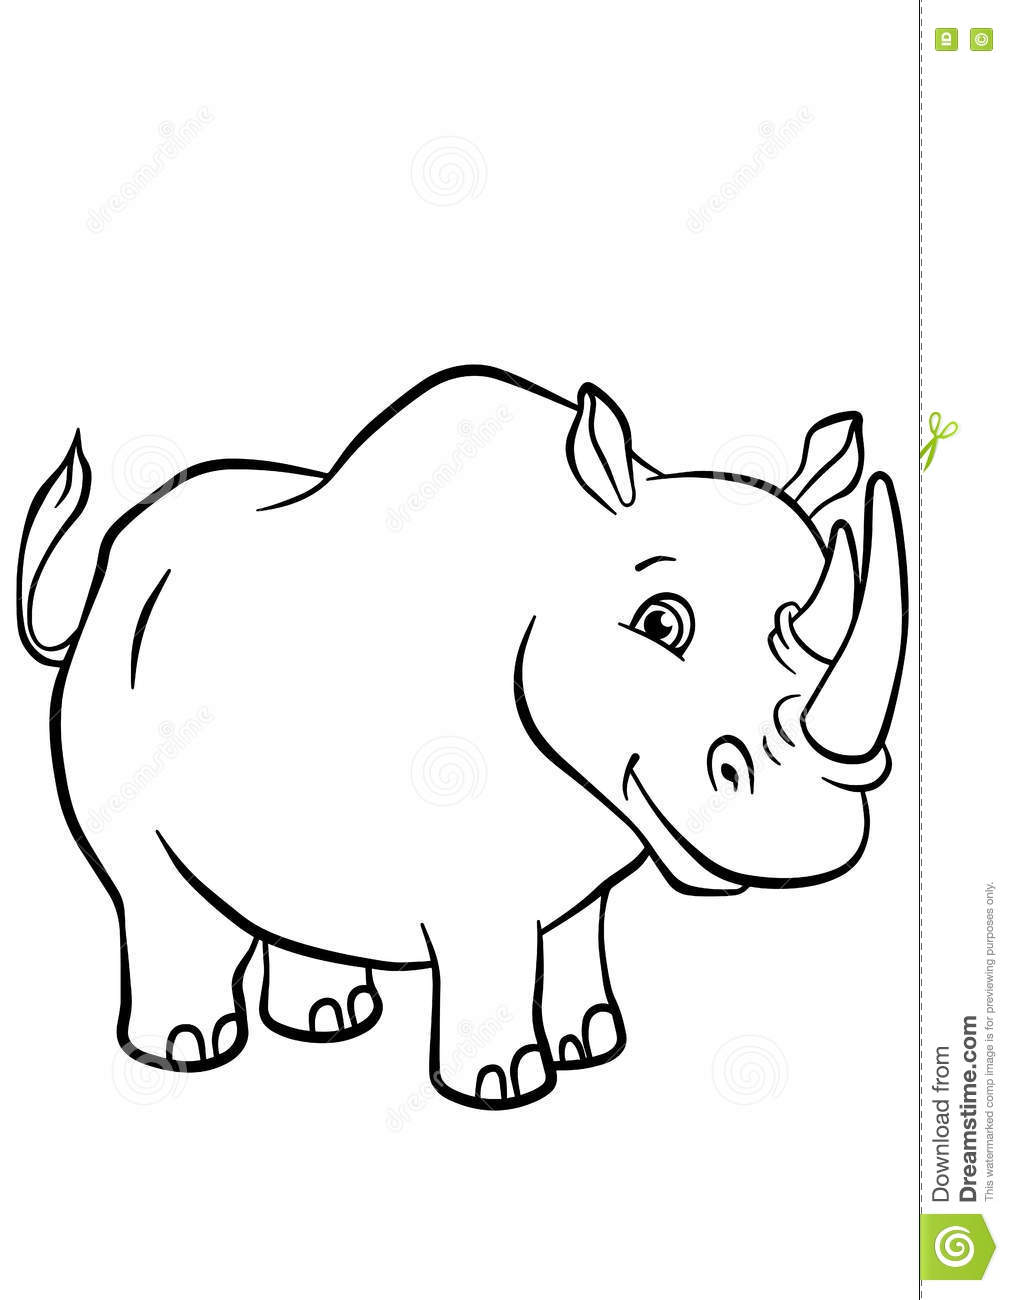 Coloring Pages. Animals. Cute Rhinoceros. Stock Vector